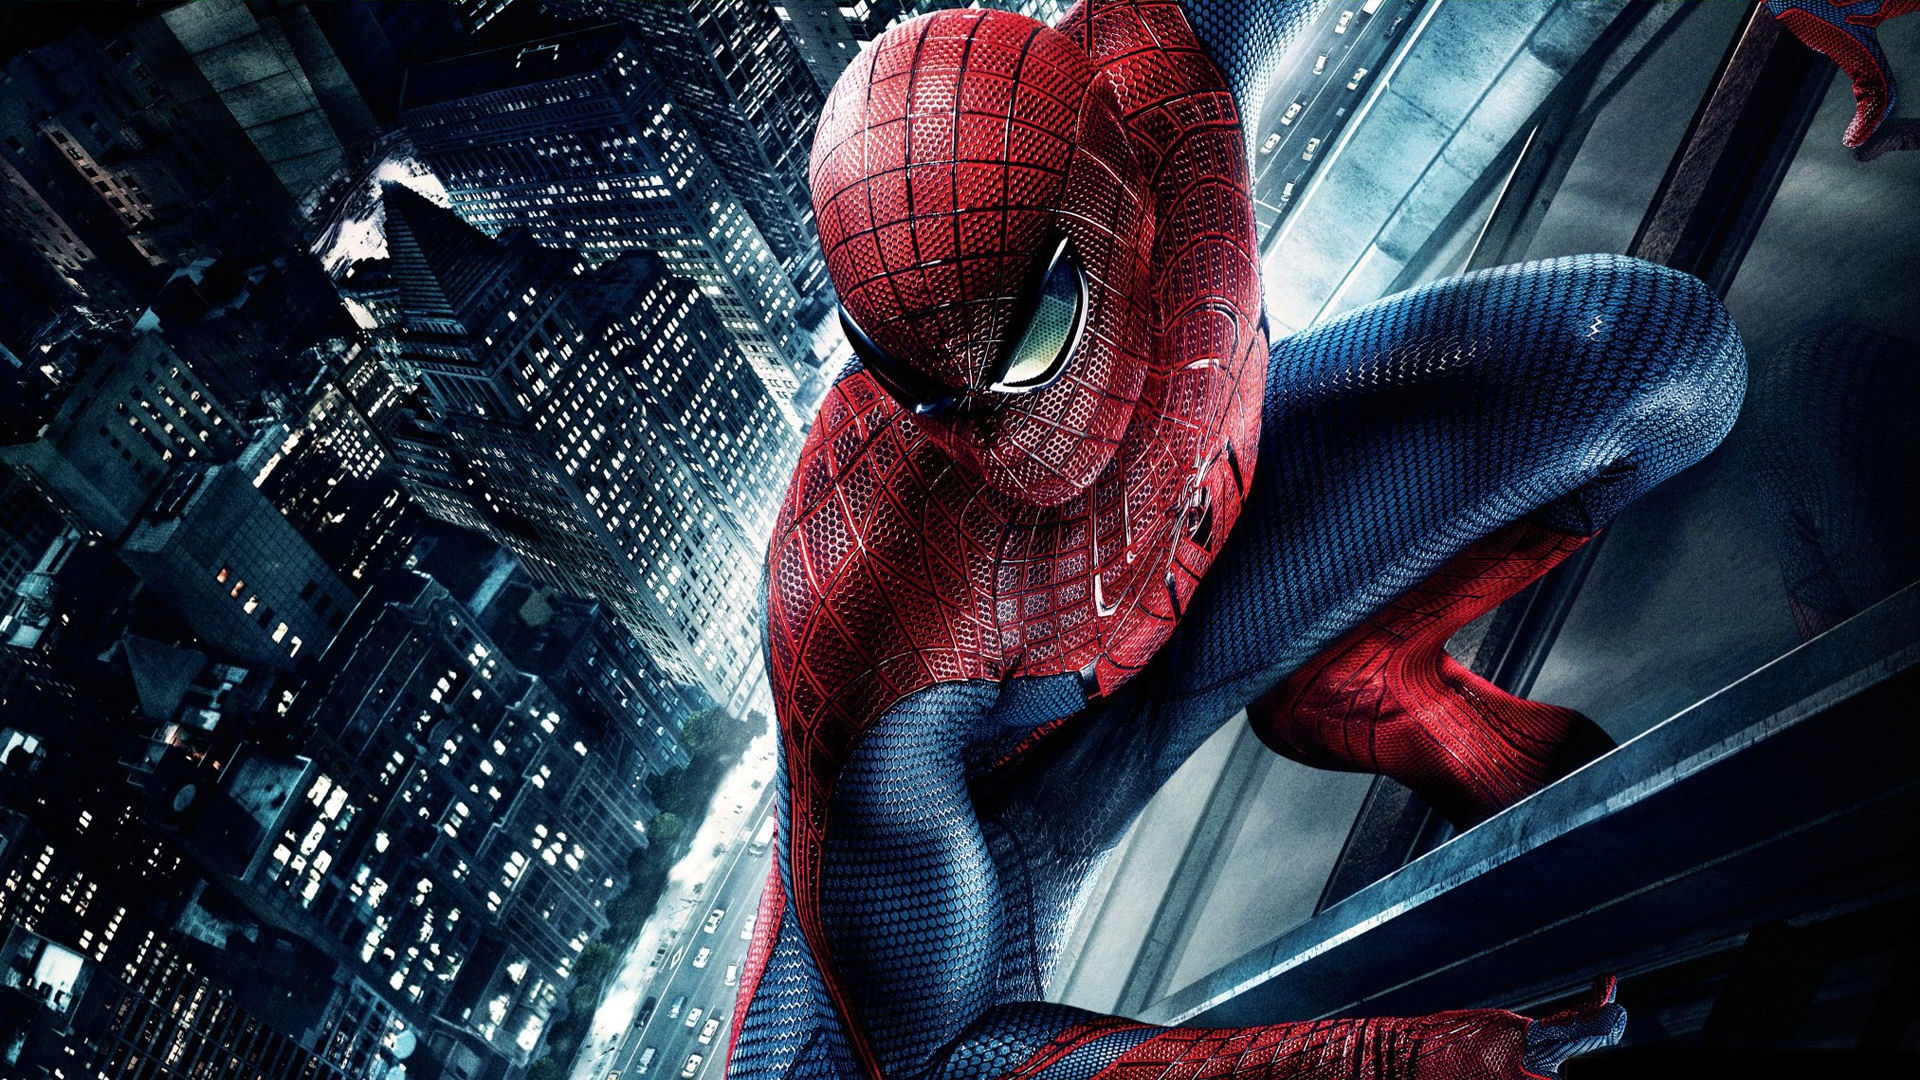 The Amazing Spider Man 2012 Wallpaper Hd Video Games Blogger